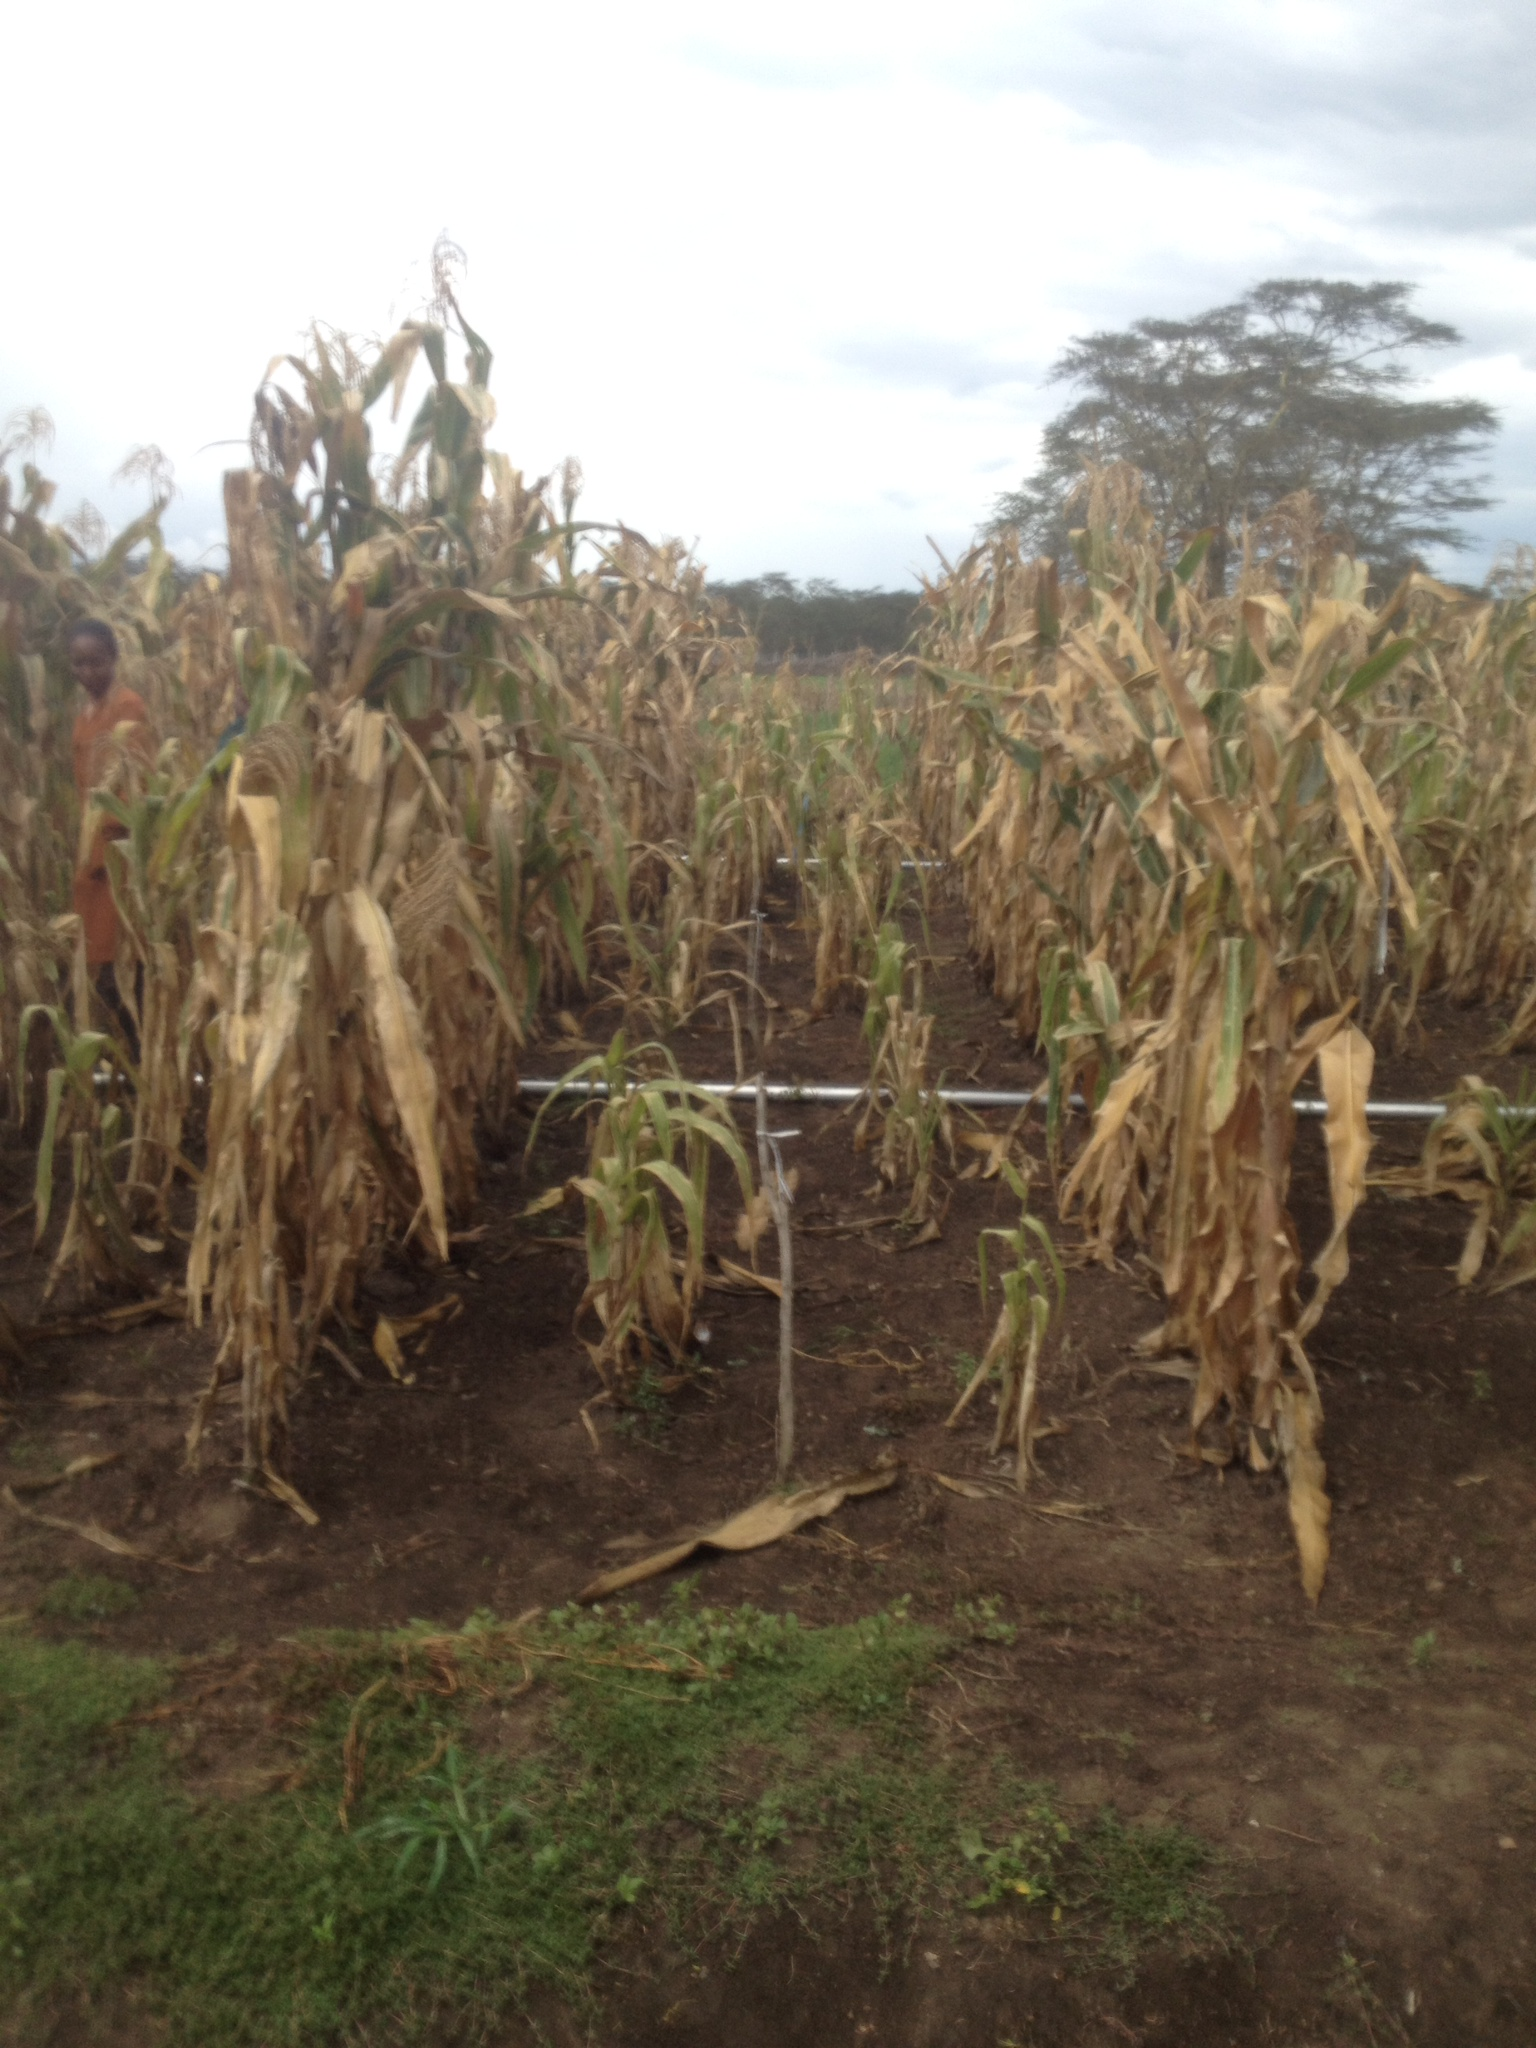 Devistaing effect of MLN in Naivasha